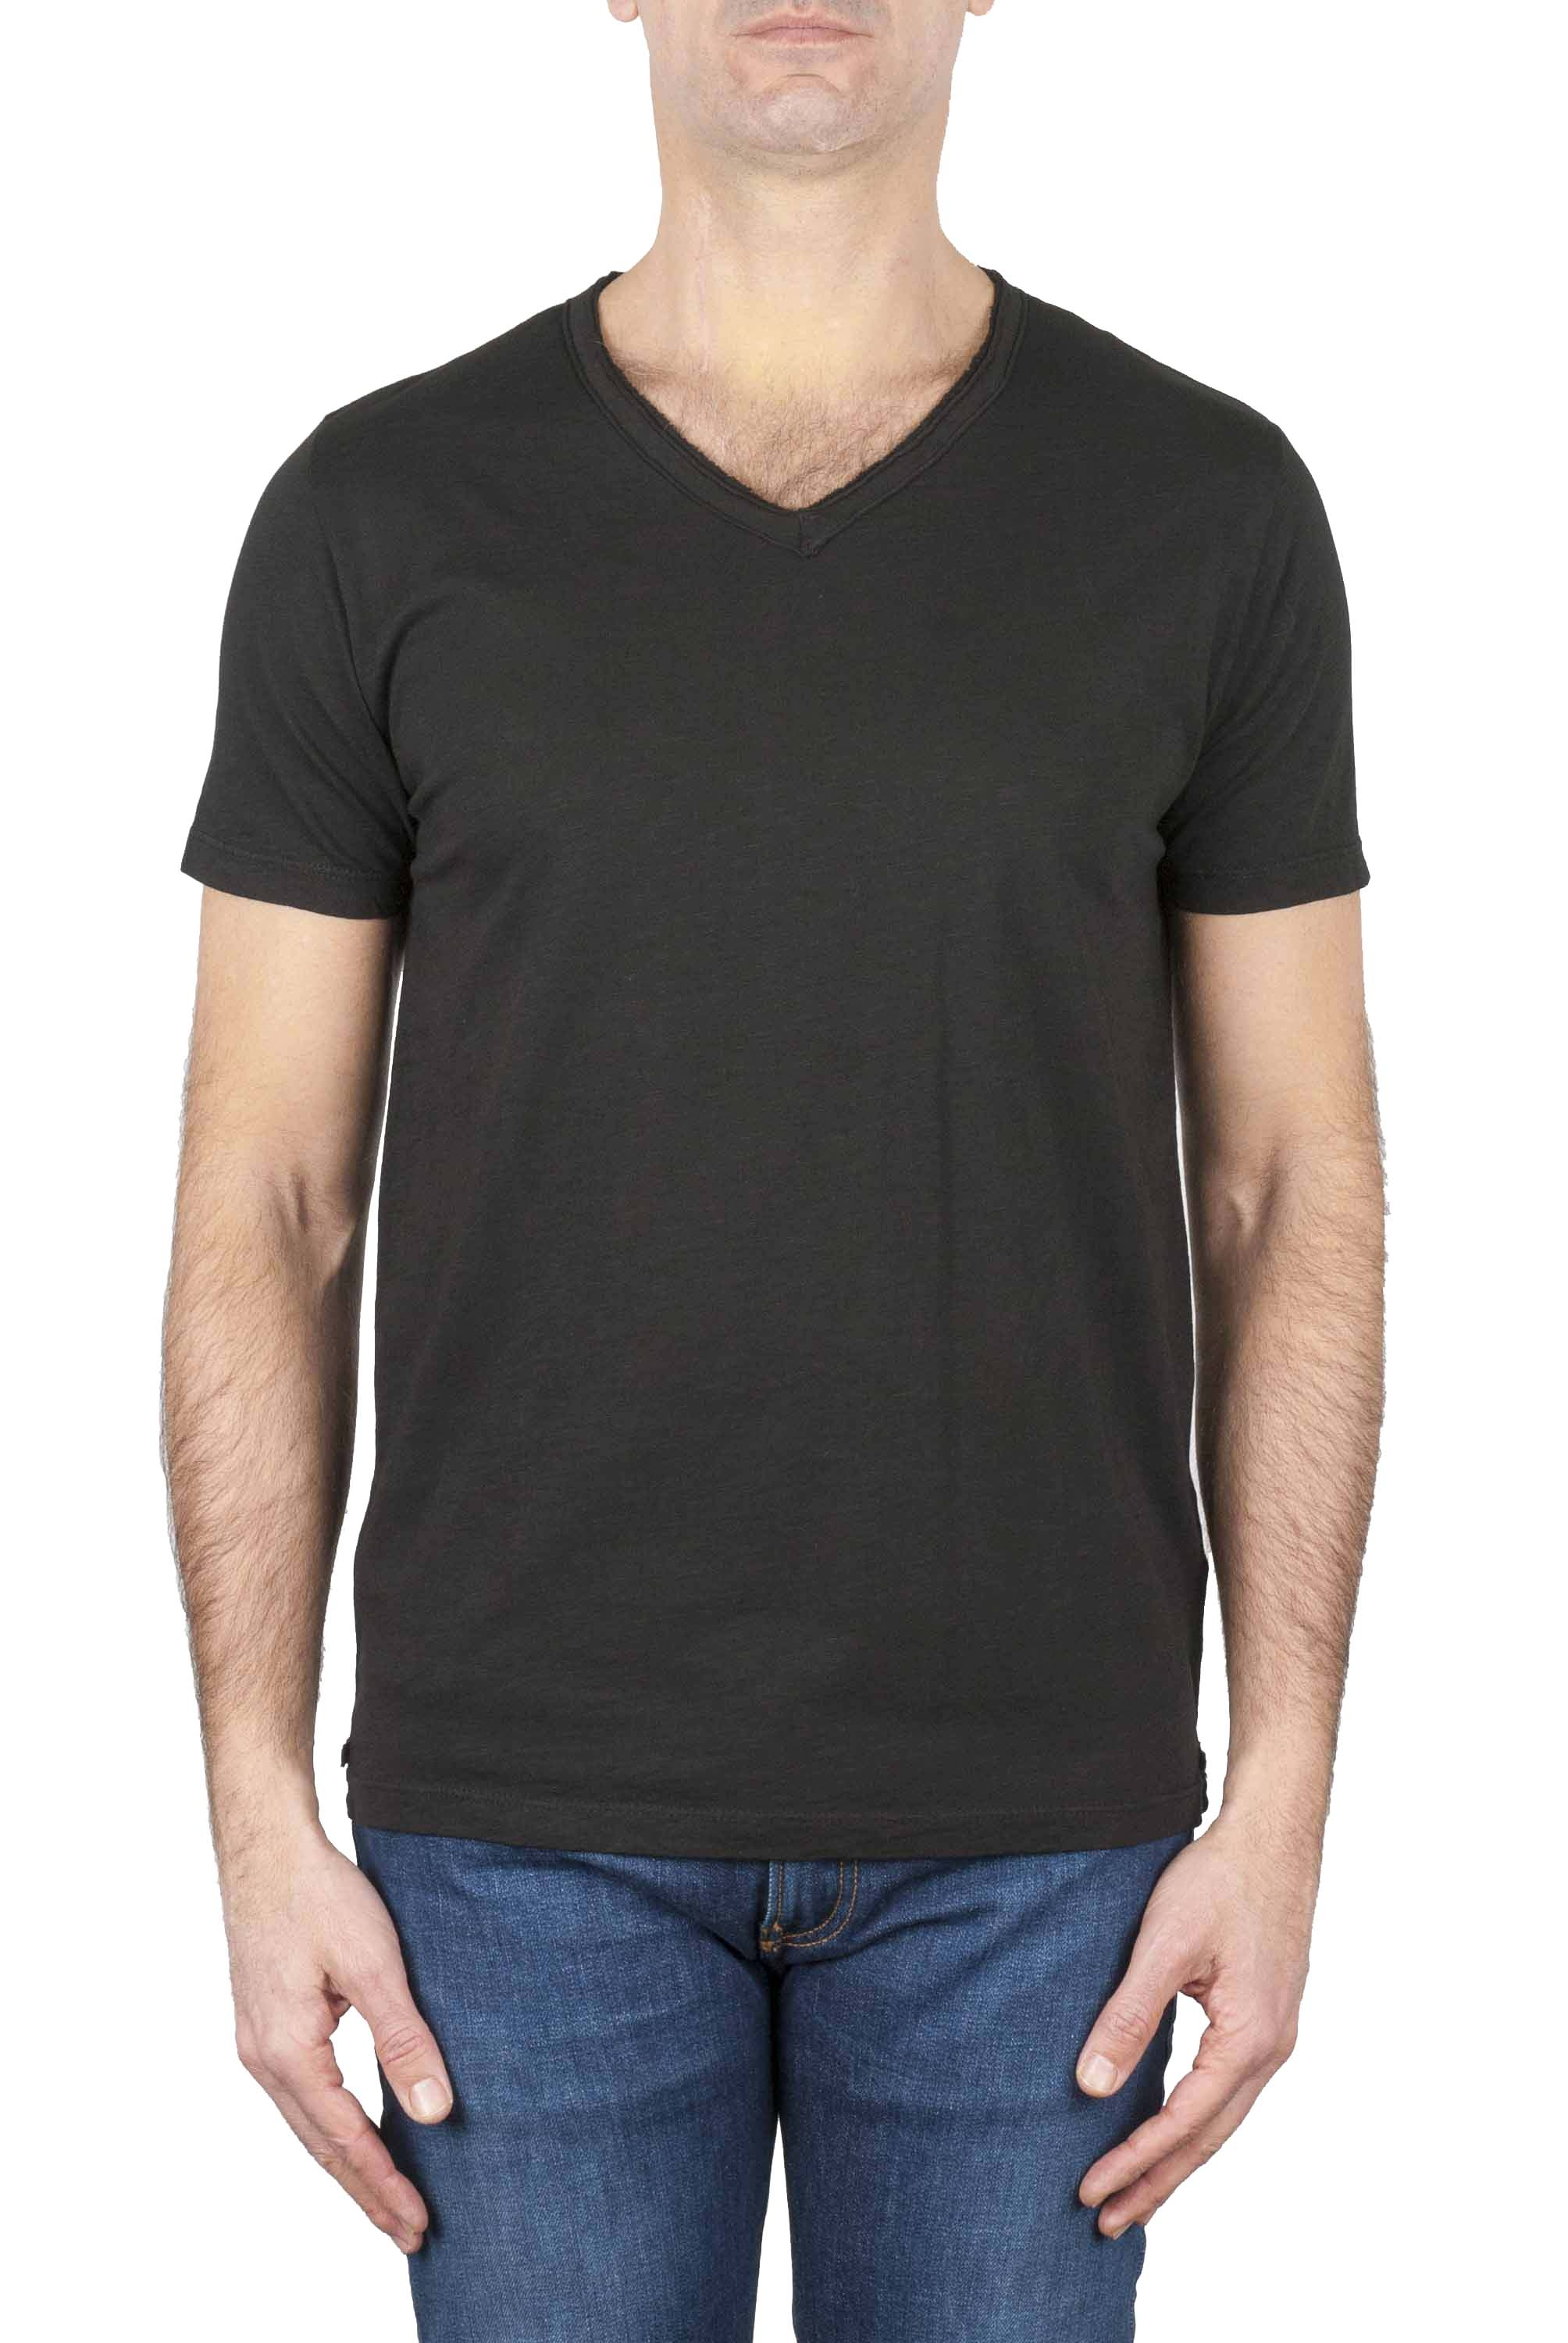 SBU 01159 Slim fit v neck t-shirt 01